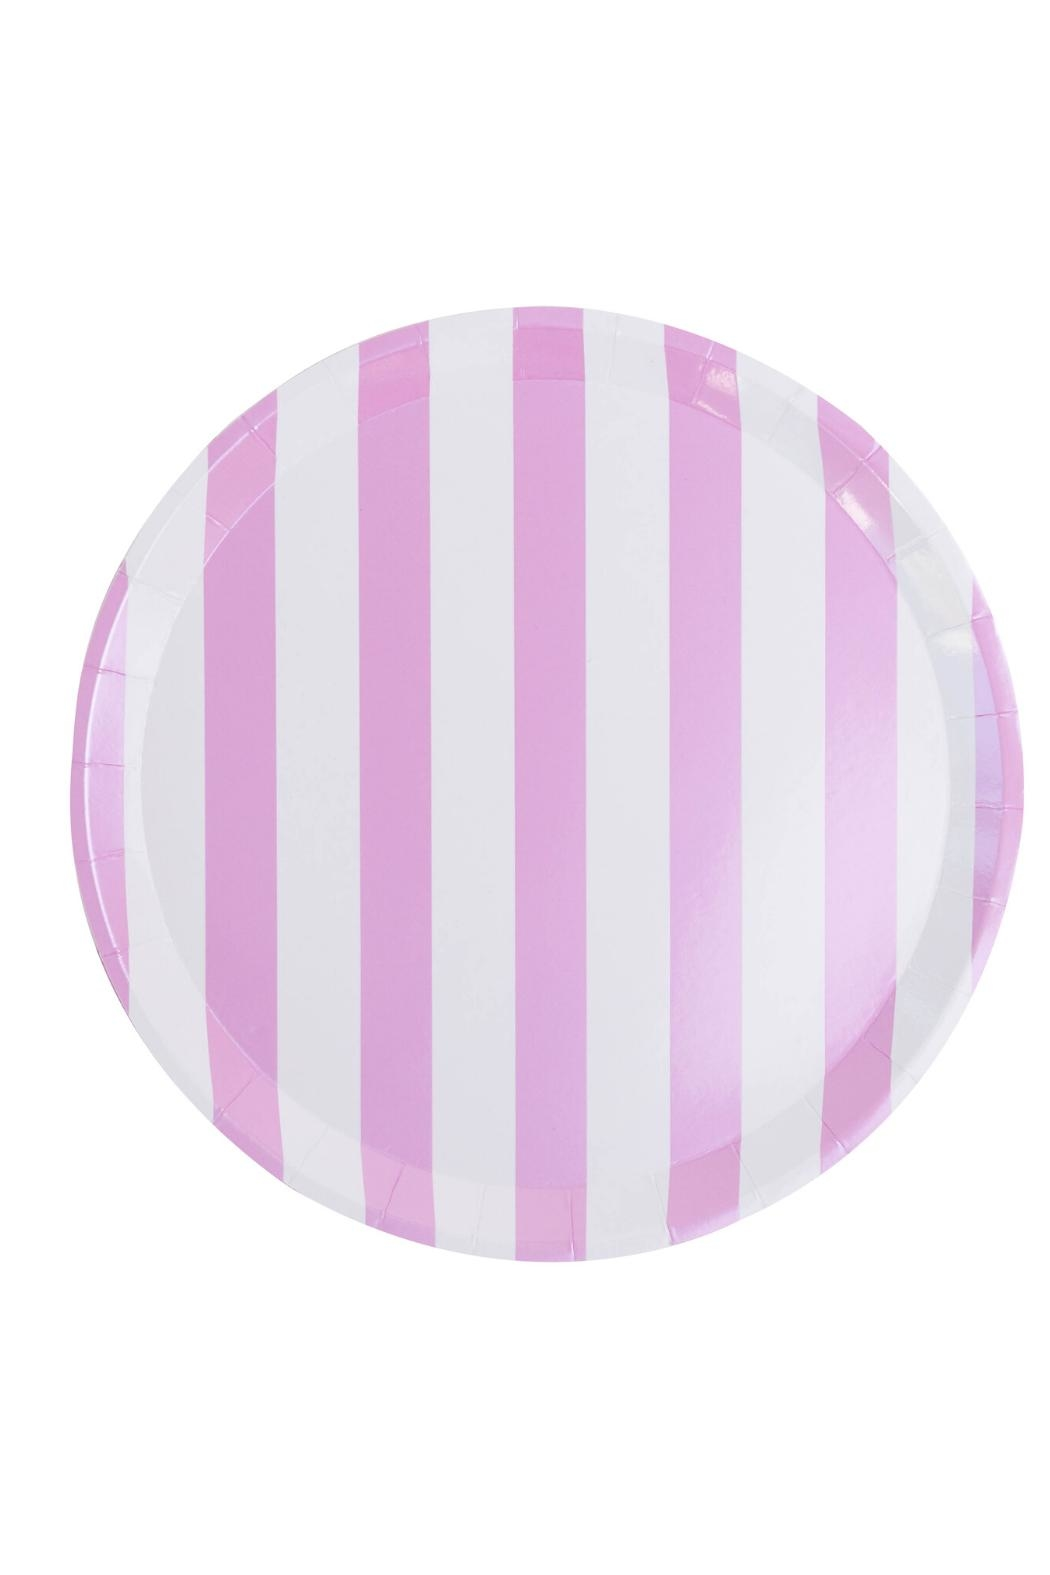 Jollity & Co Pink & White Striped Dinner Plate - Main Image